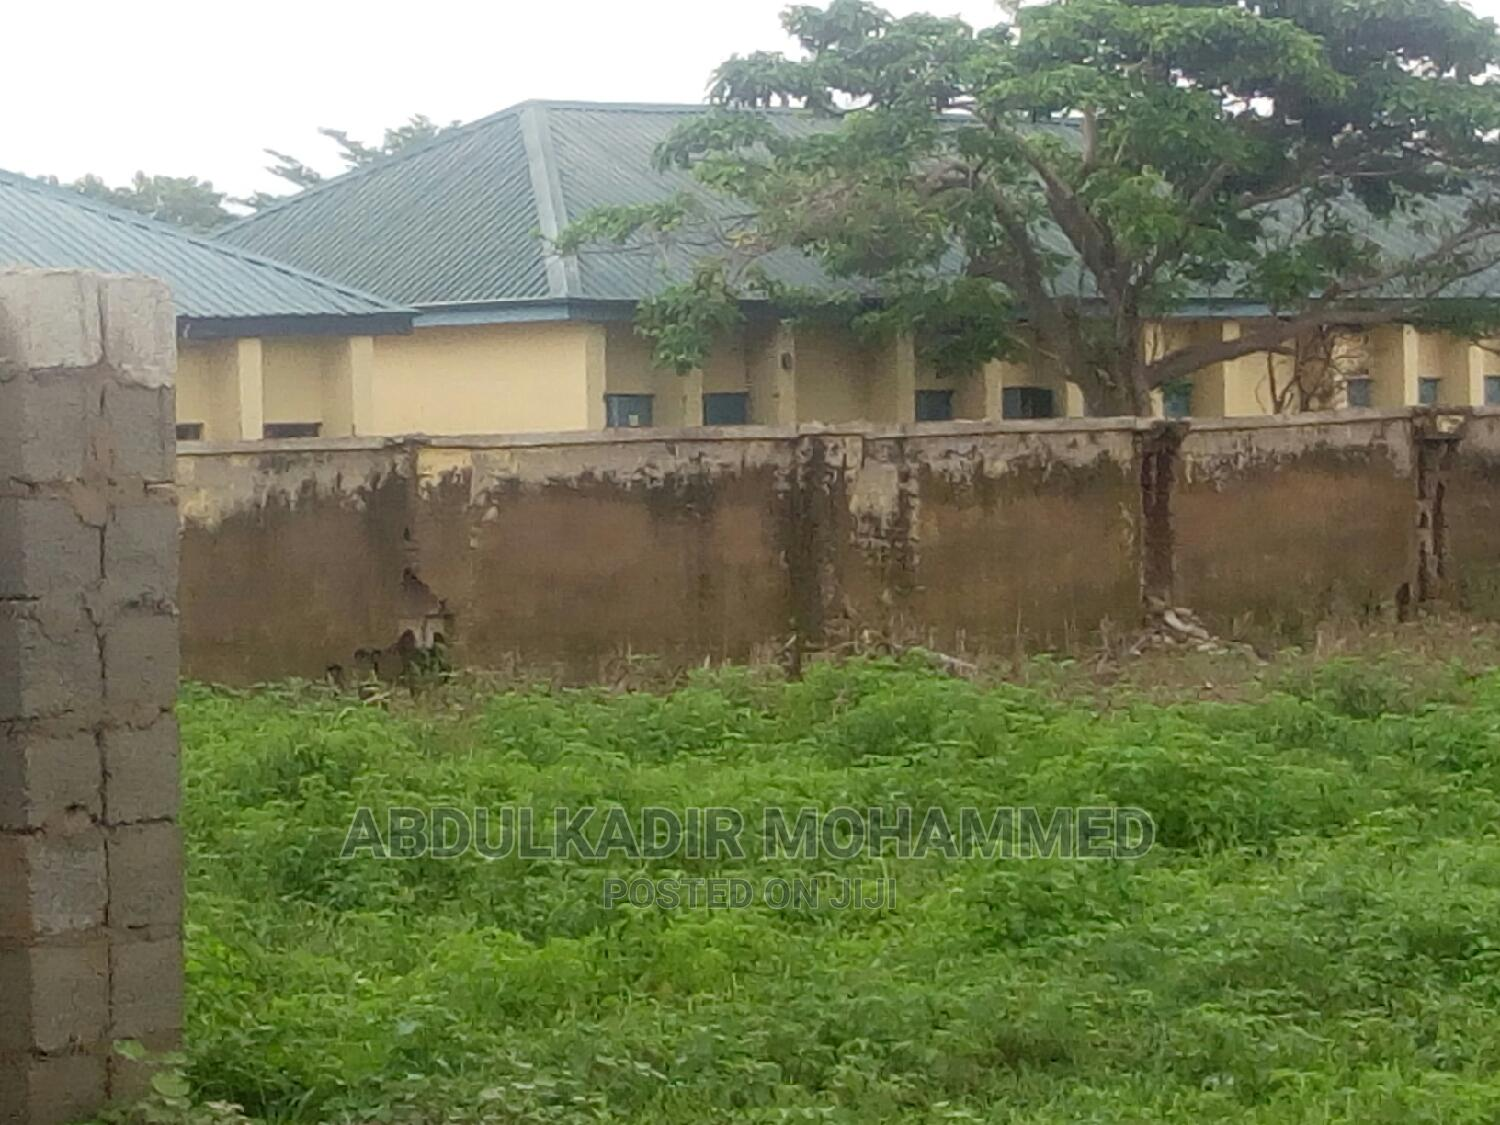 Archive: Federal Ministry of Works and Housing